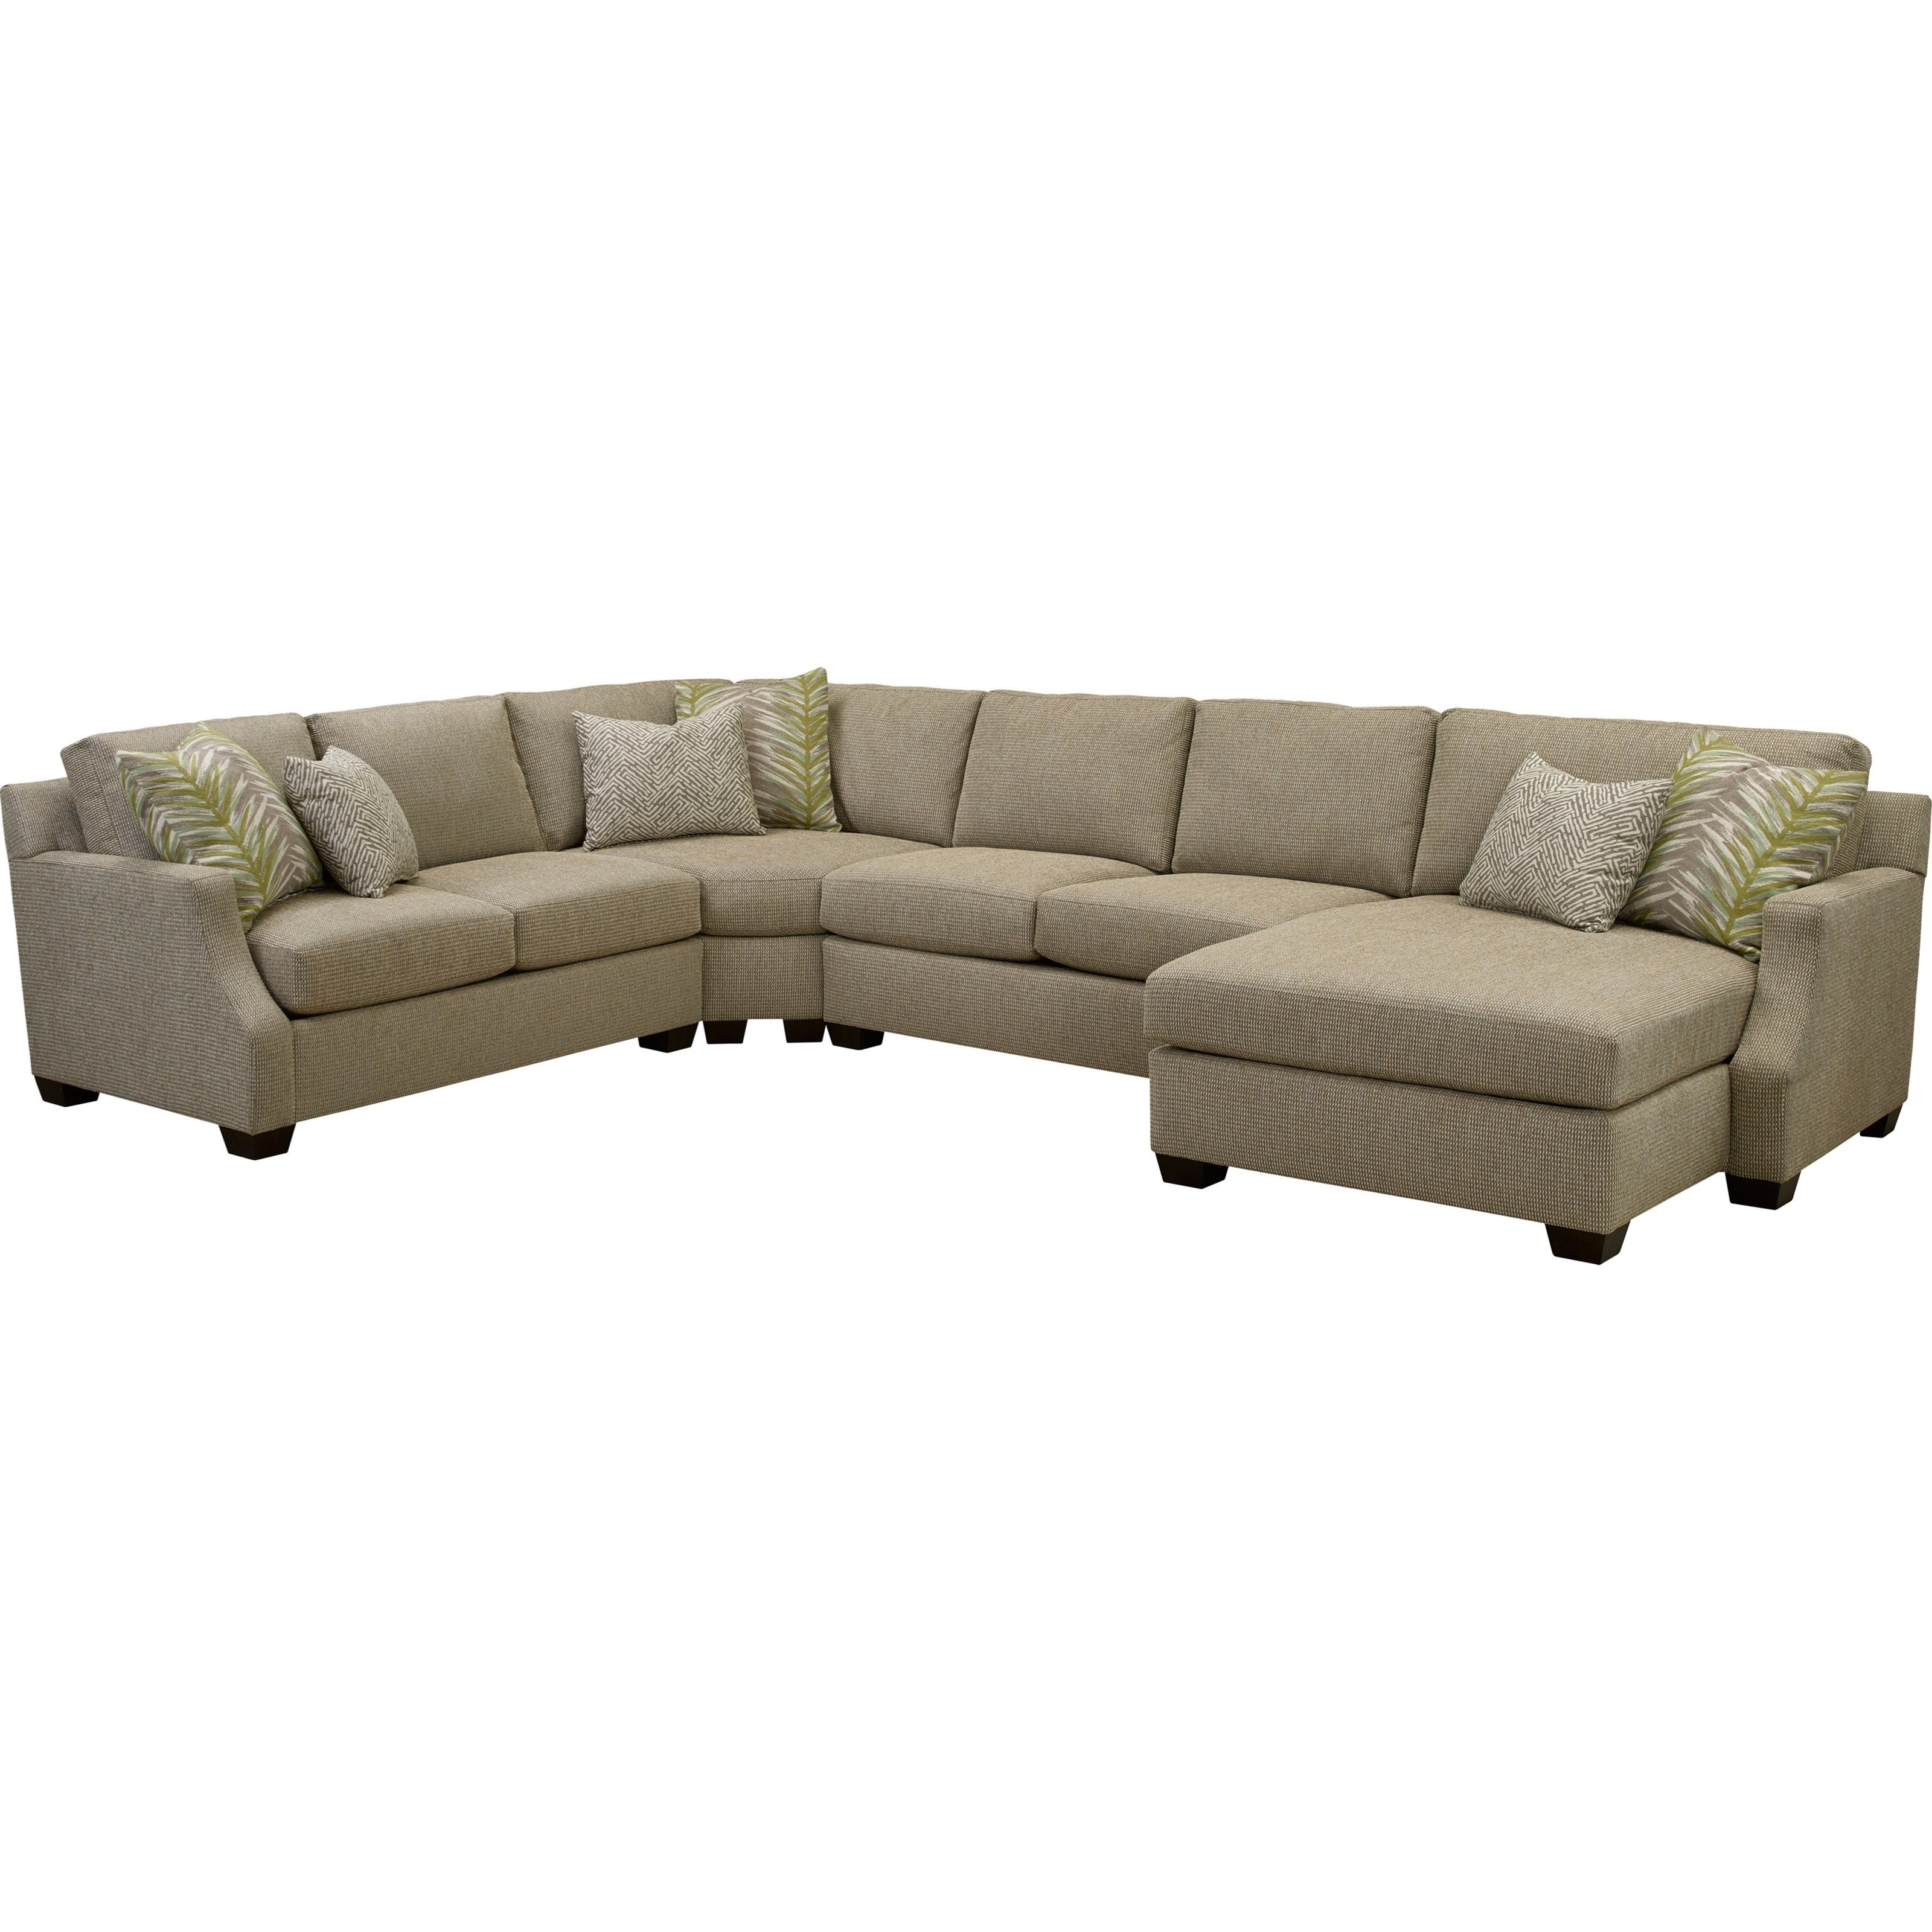 Newest Broyhill Furniture Chambers Large 4 Pc (View 11 of 20)